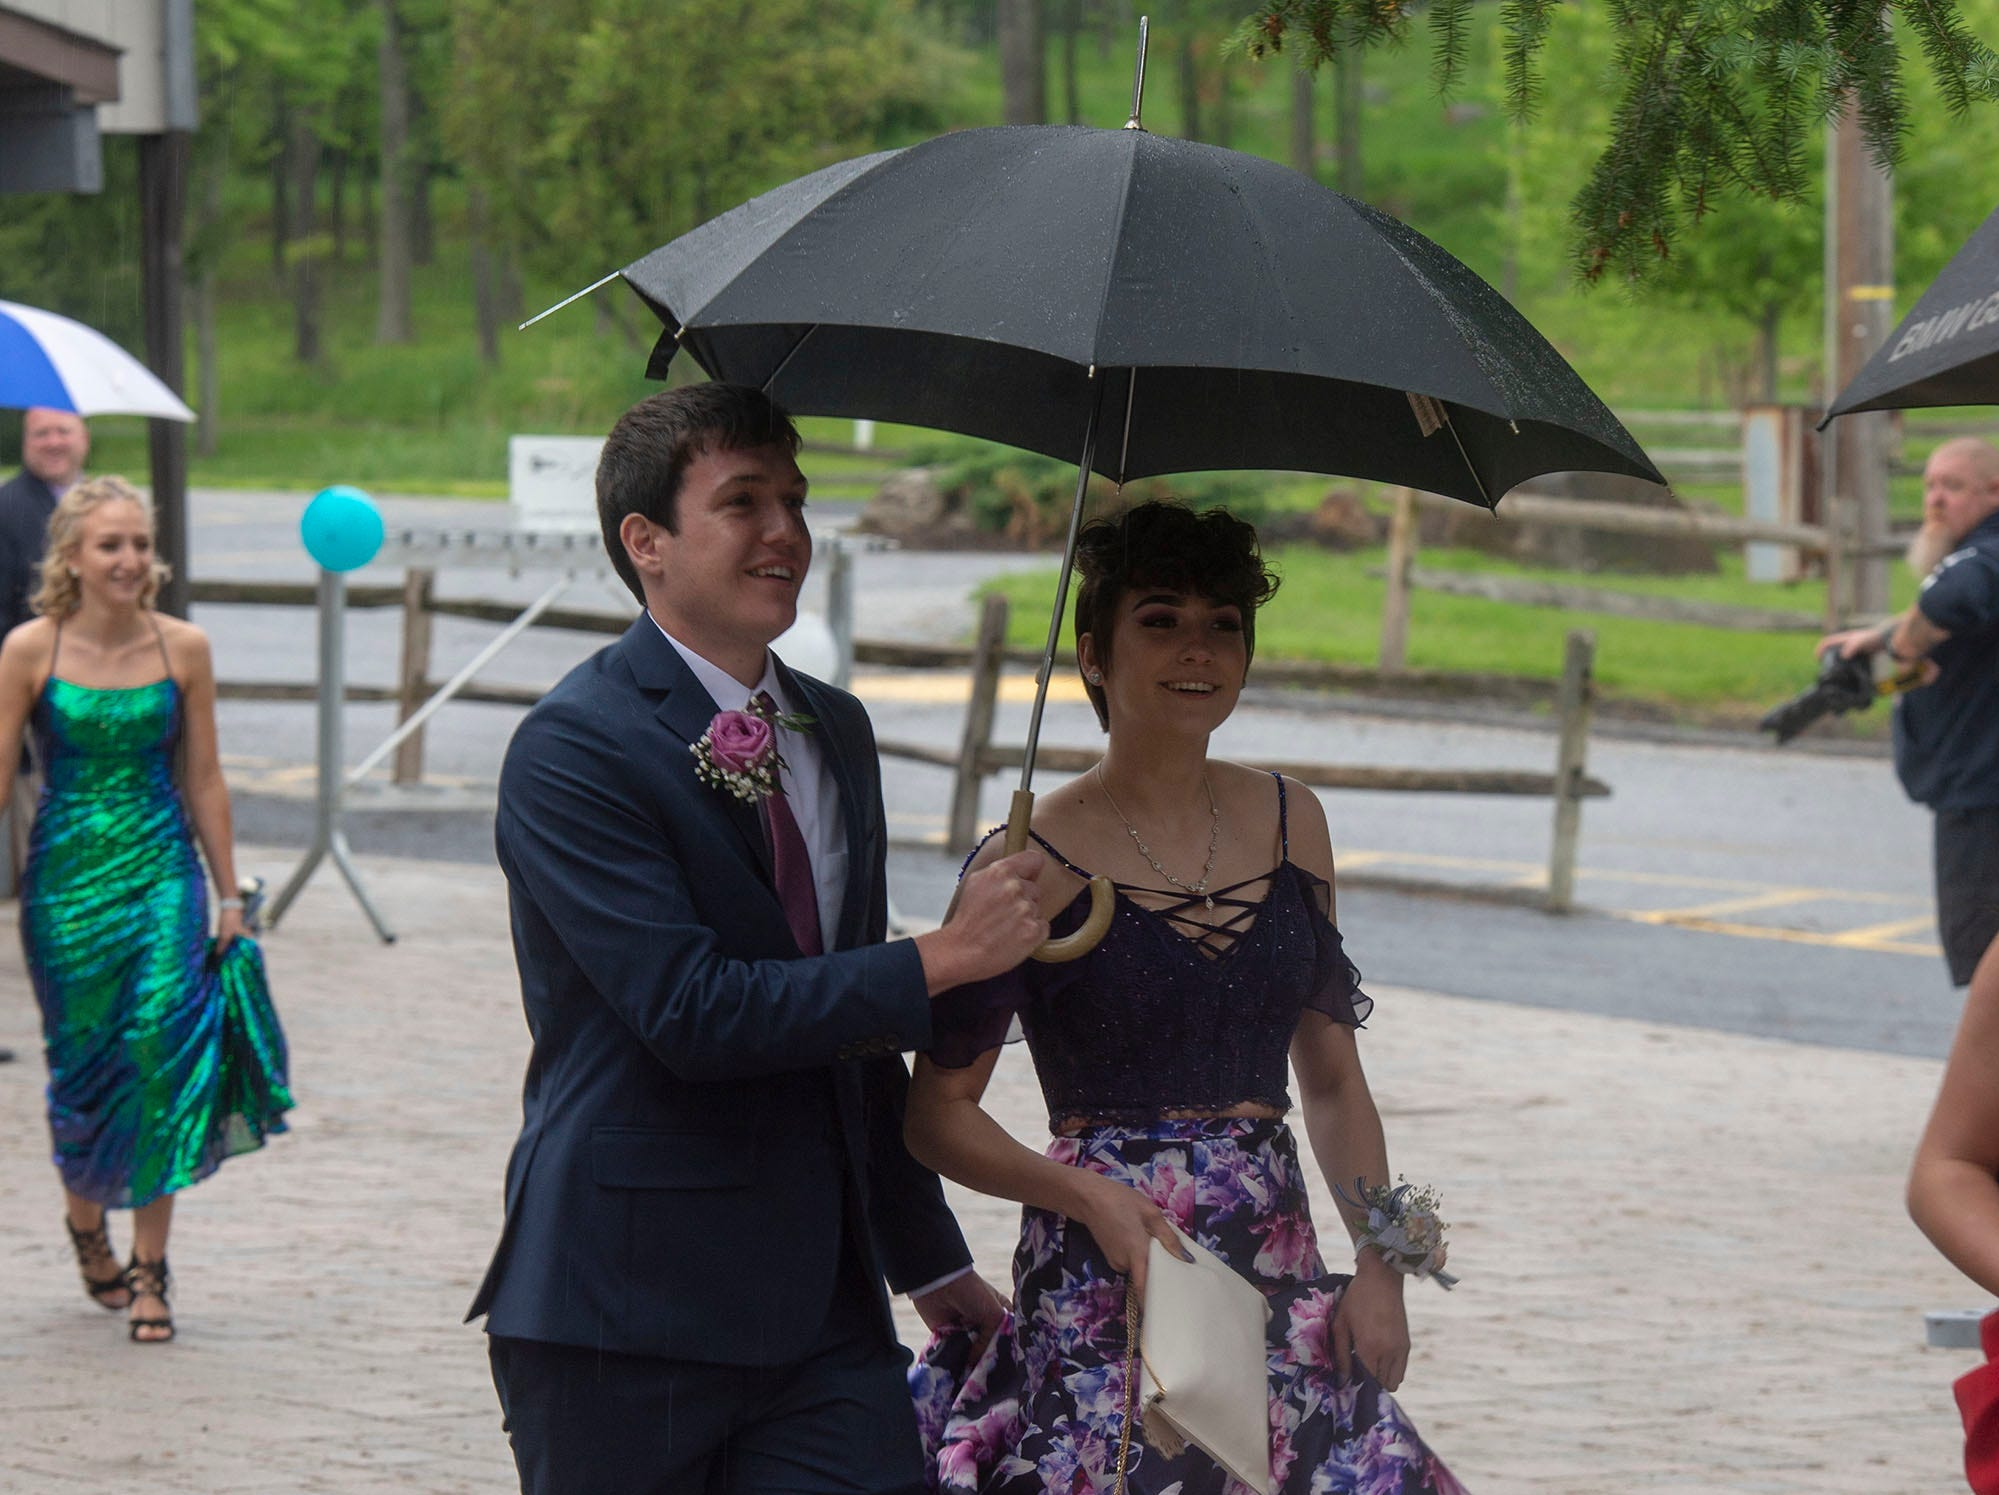 Students and their guests arrive at Roundtop Mountain Resort Saturday, May 11, 2019 for the Dover High School prom.